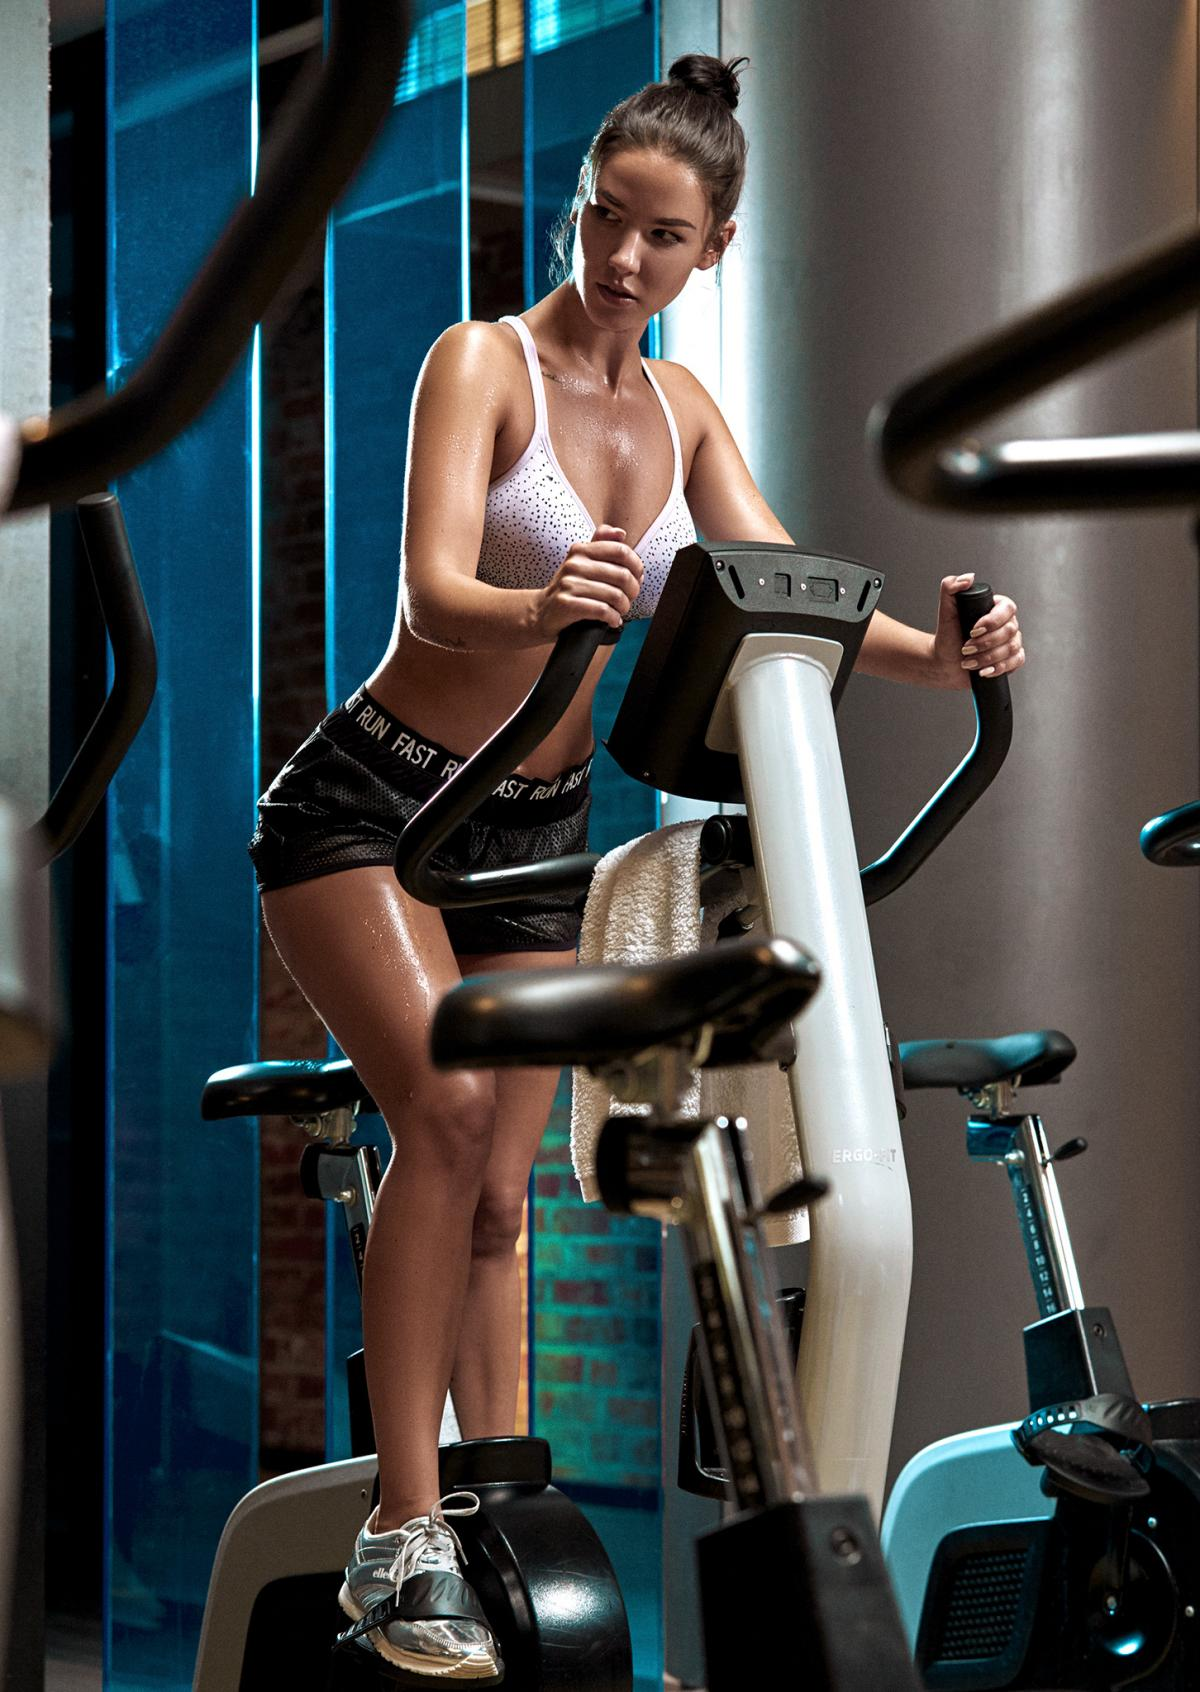 A healthy body, a beautiful body, a good mood and a desire to live, what other motivations do you need for sports?